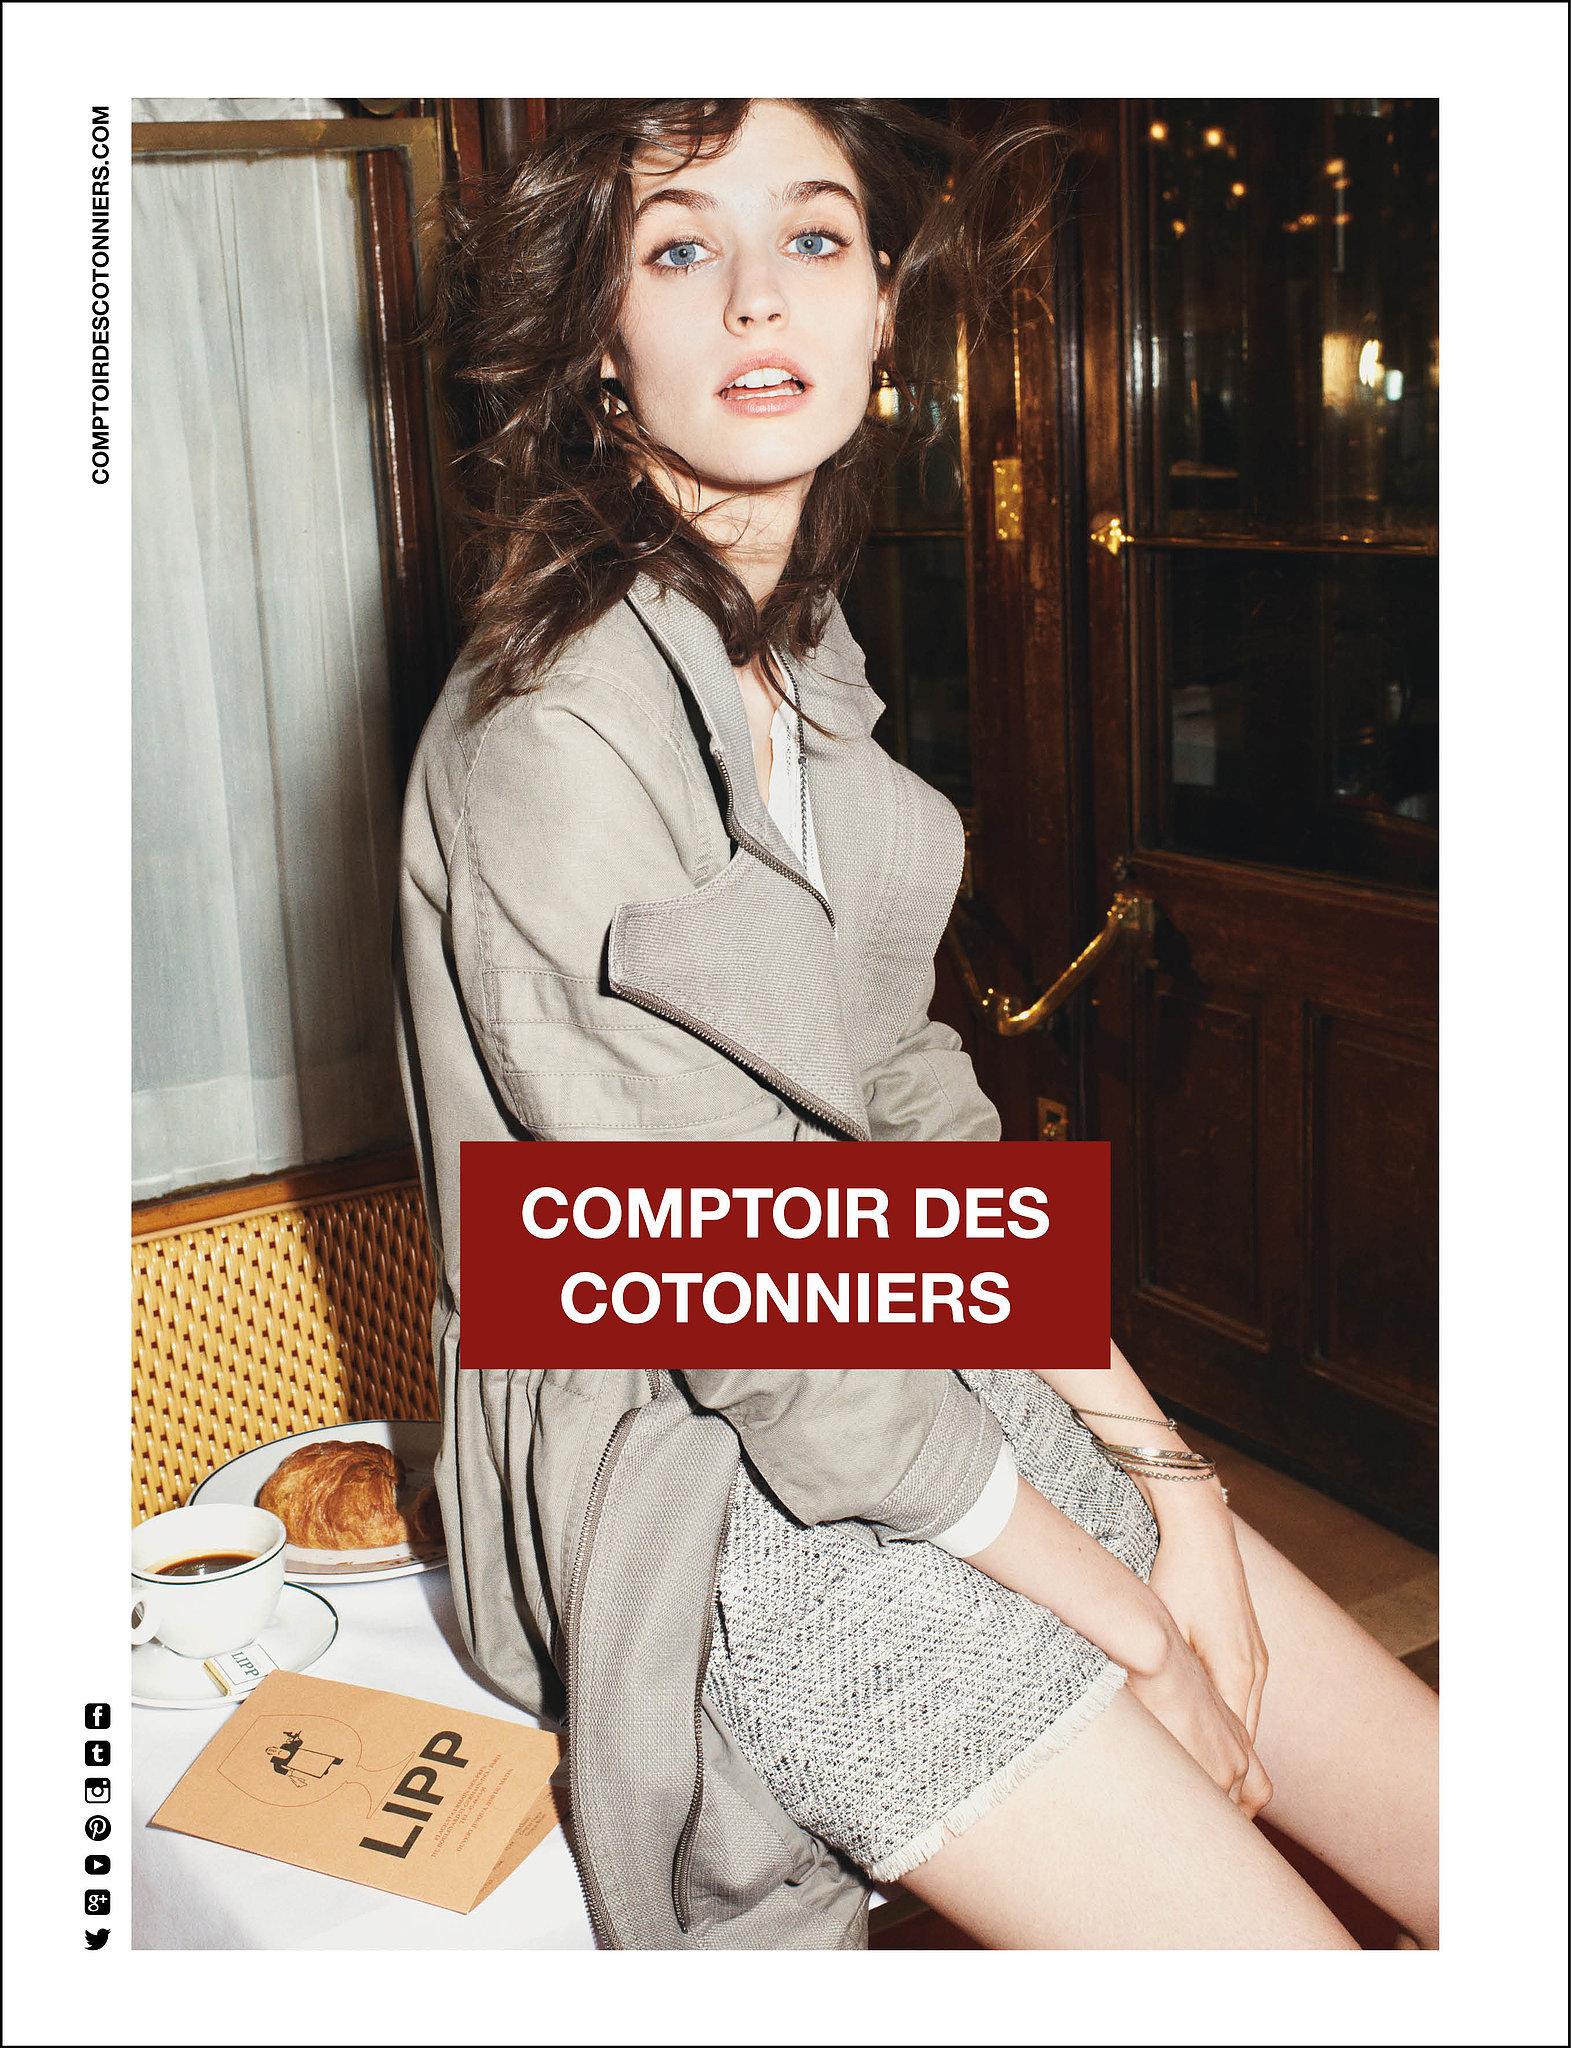 Comptoir des cotonniers spring 2014 spring campaigns so pretty you 39 ll jump for joy popsugar - Bottine comptoir des cotonniers ...